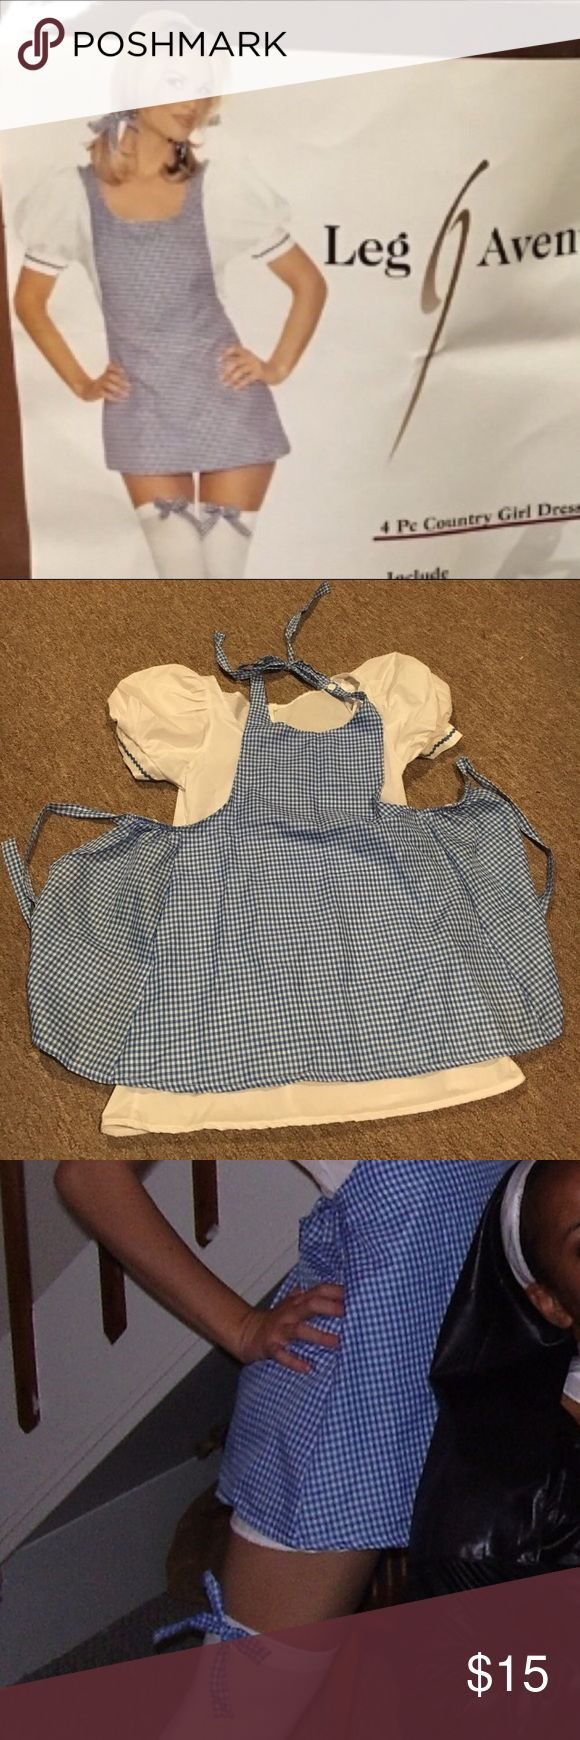 Adult Dorothy costume This costume has been worn a couple of times and is in very good condition. It comes with the dress, apron, hair ribbons, and thigh high leggings. I have the shoes I wore with it listed separately if you are looking for shoes! Leg Avenue Other